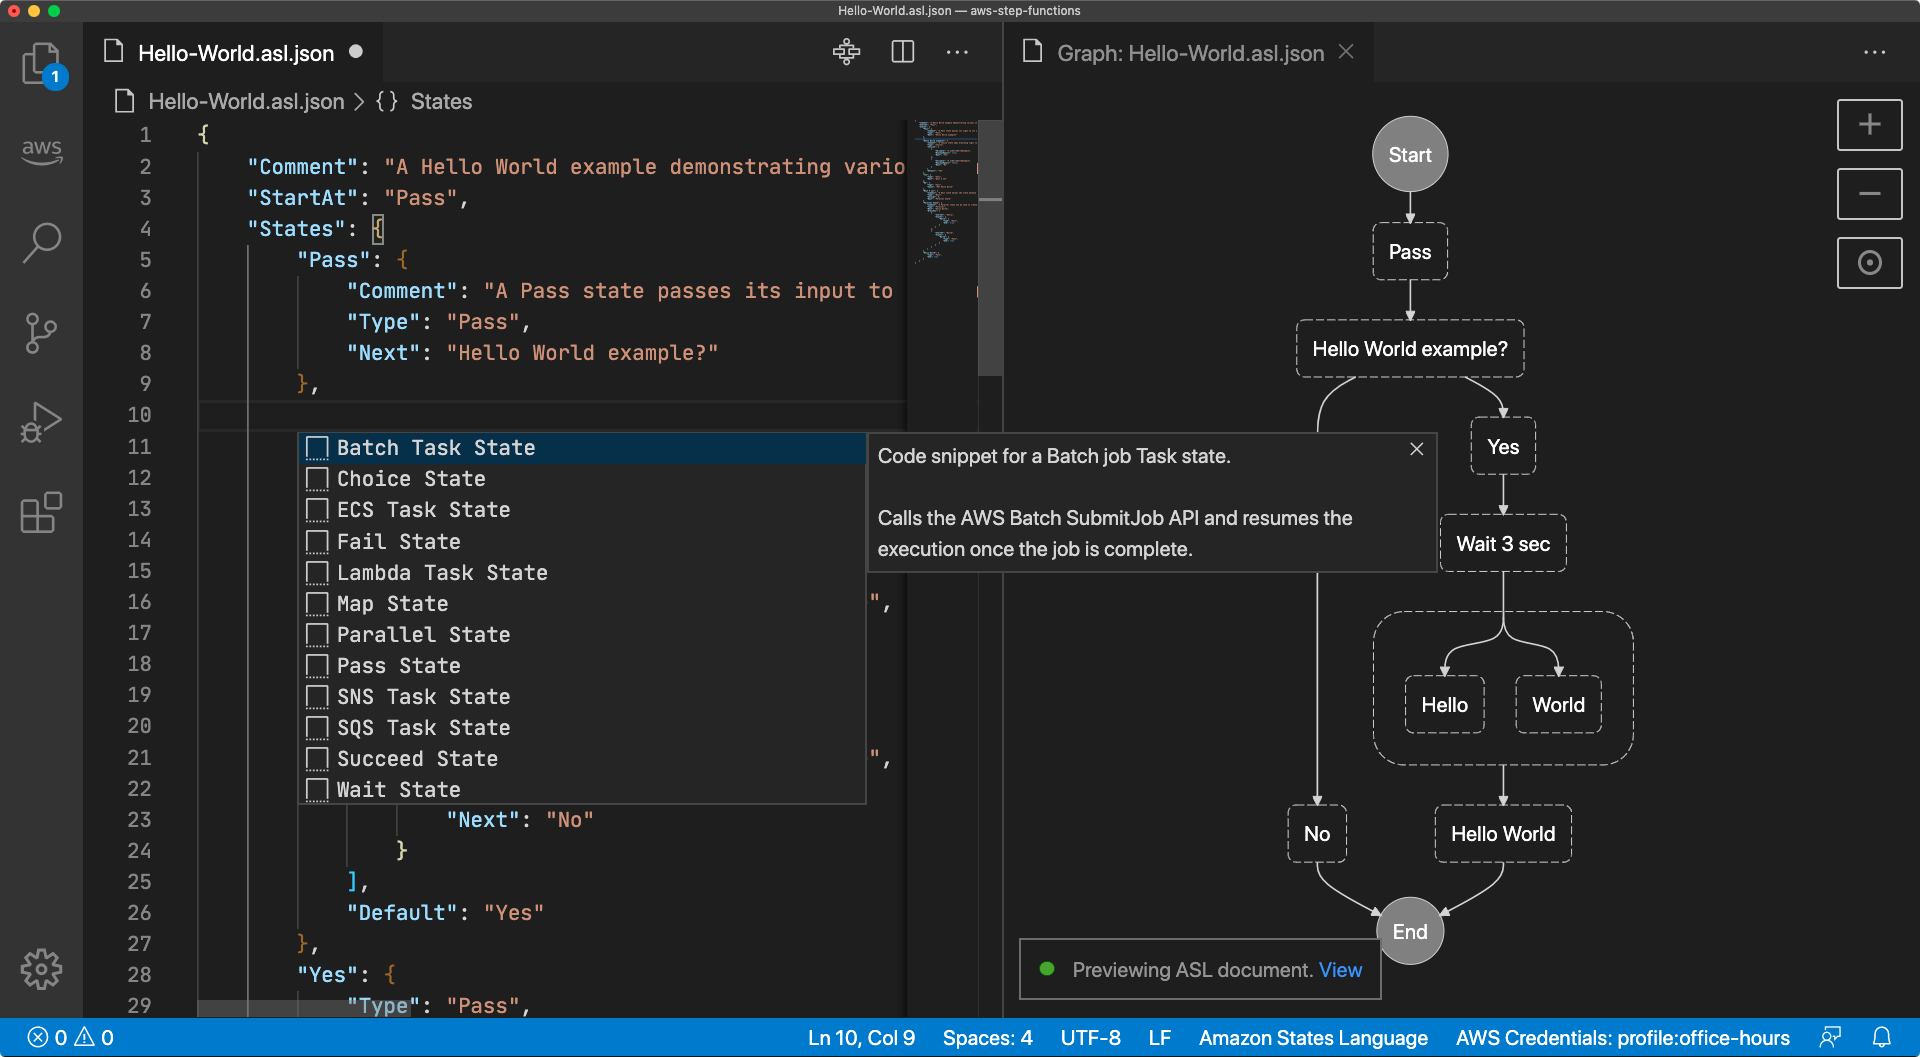 A screen capture of a Visual Studio Code window with a code snippet insertion dialog showing twelve Amazon States Langauge states